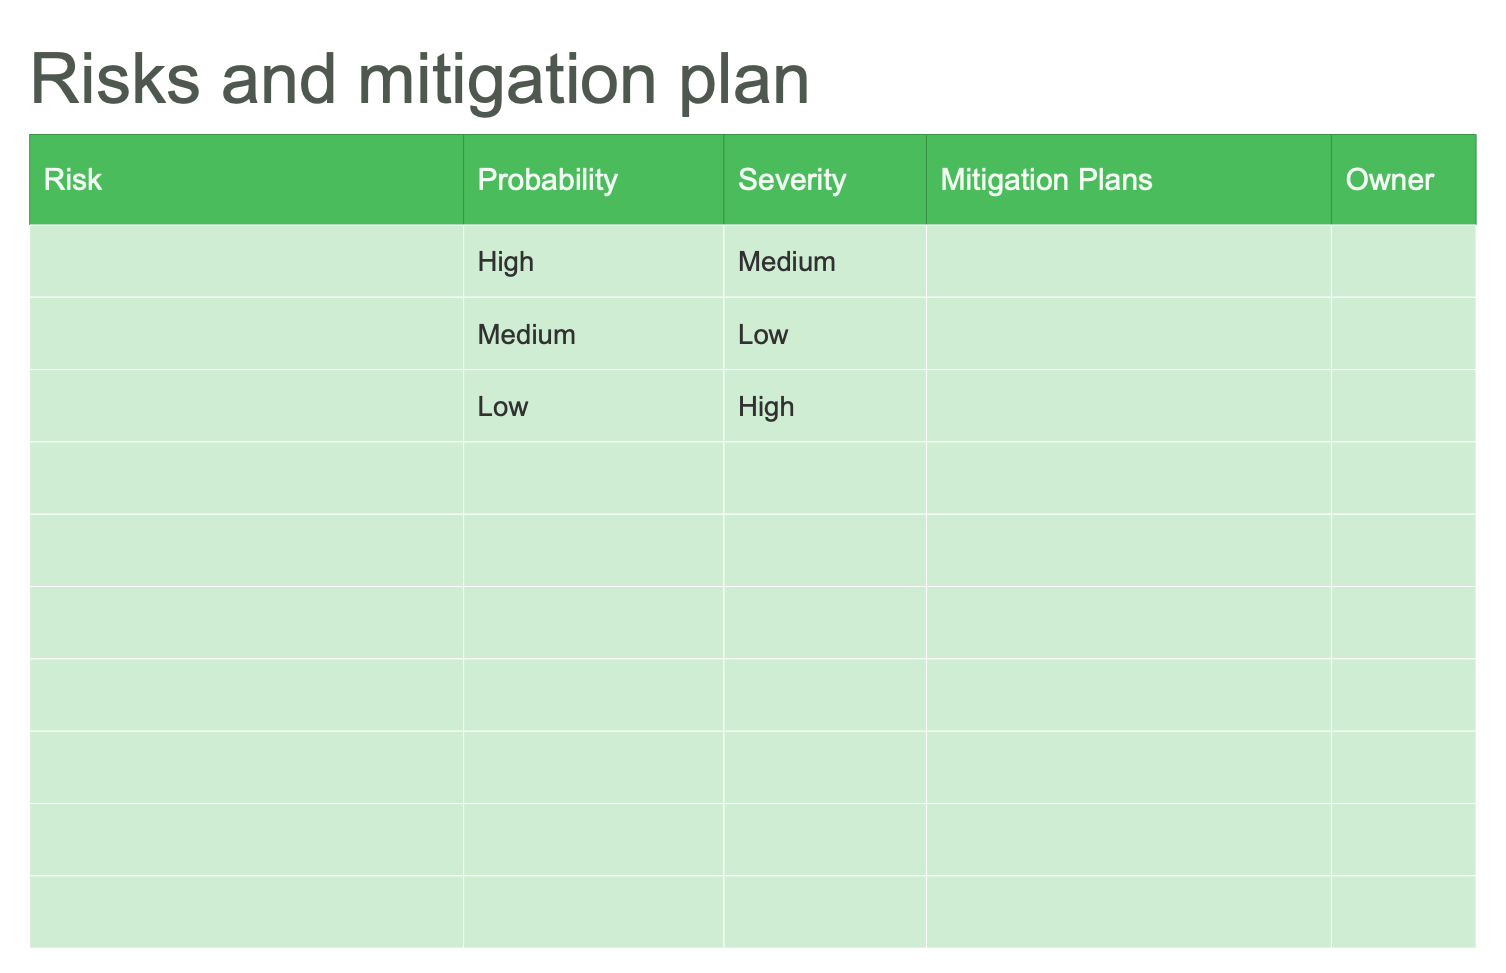 Risks and Mitigation Plan Table